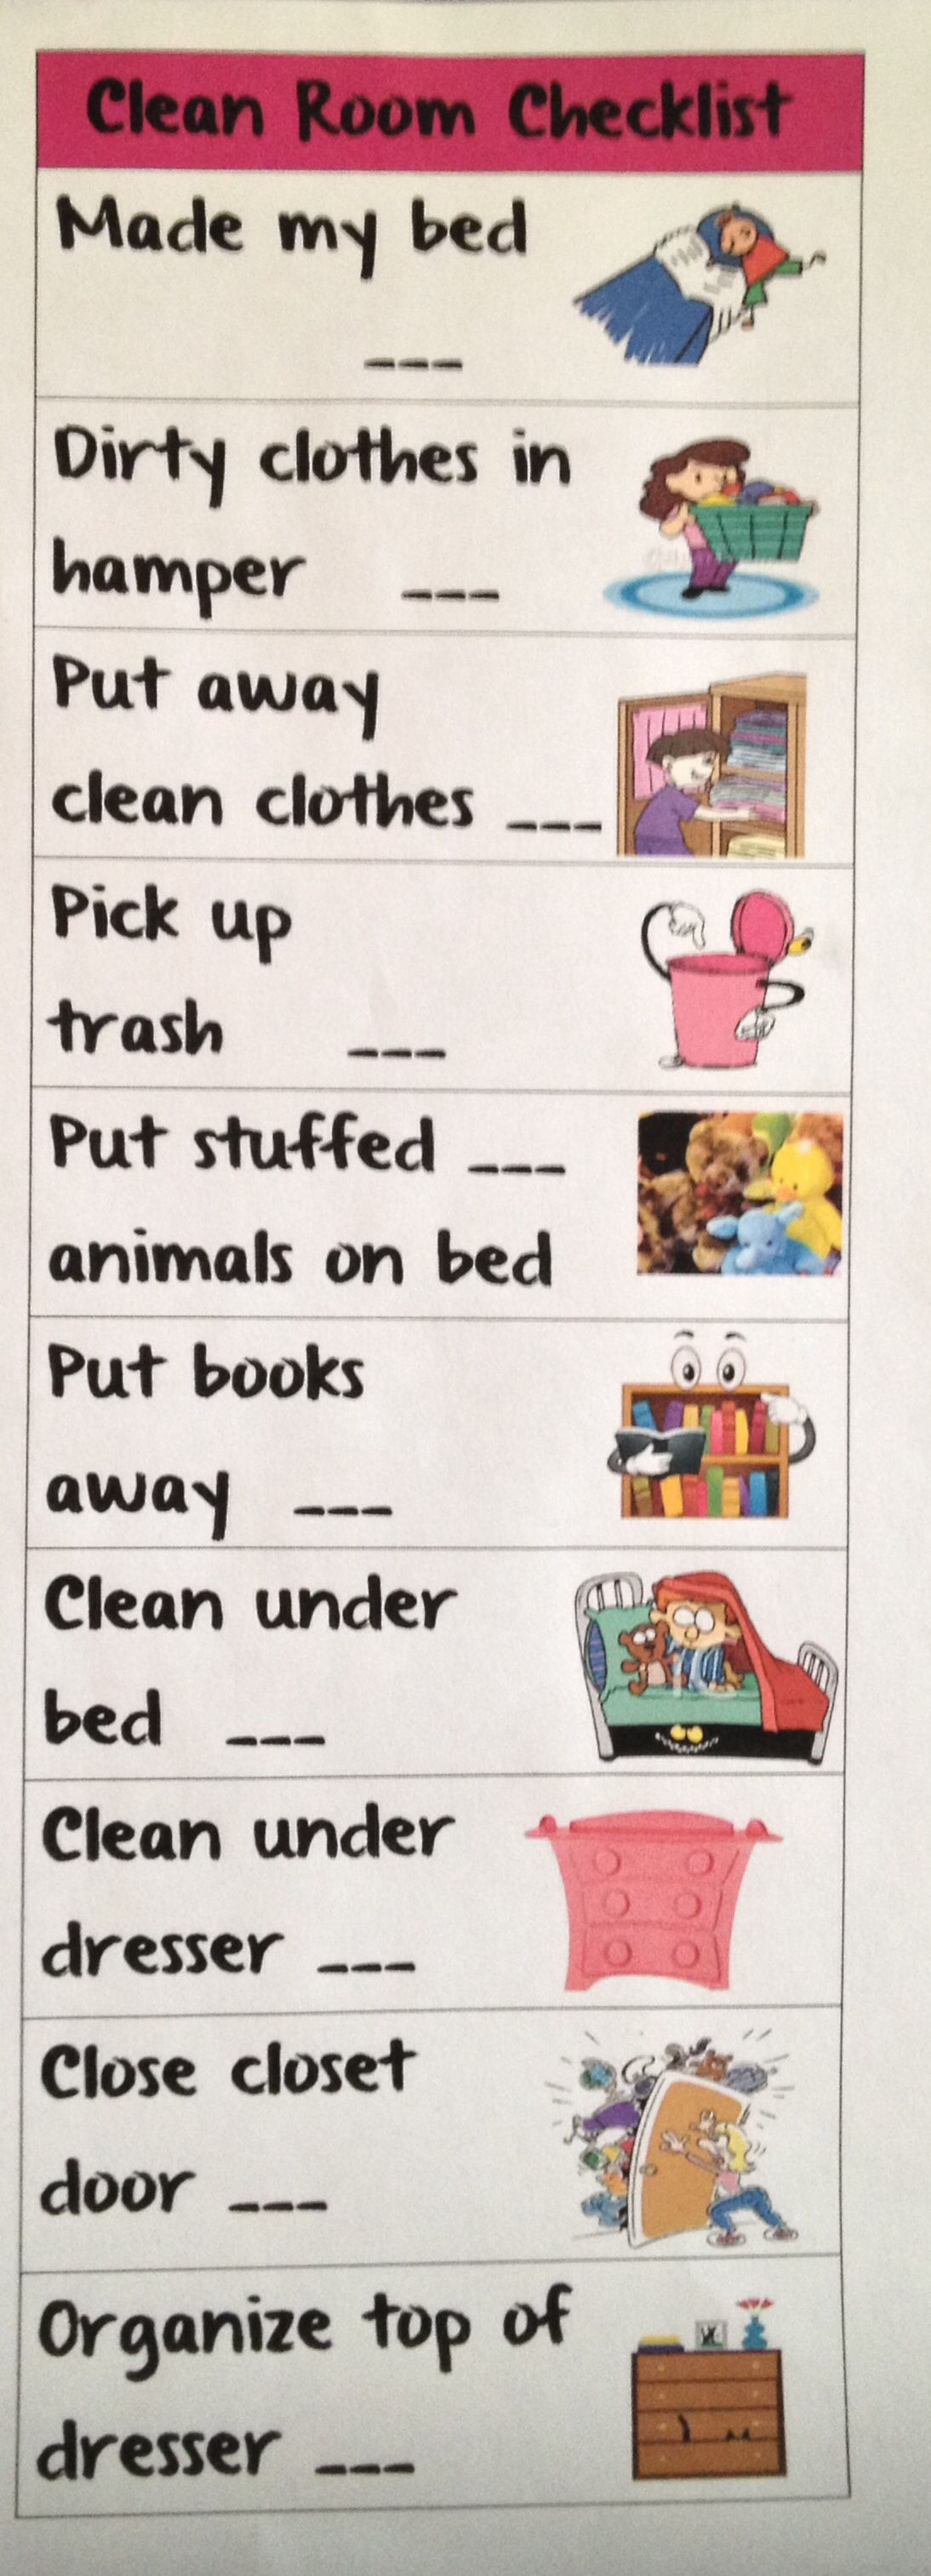 Clean Room Checklist For The Kids Laminate And Use A Dry